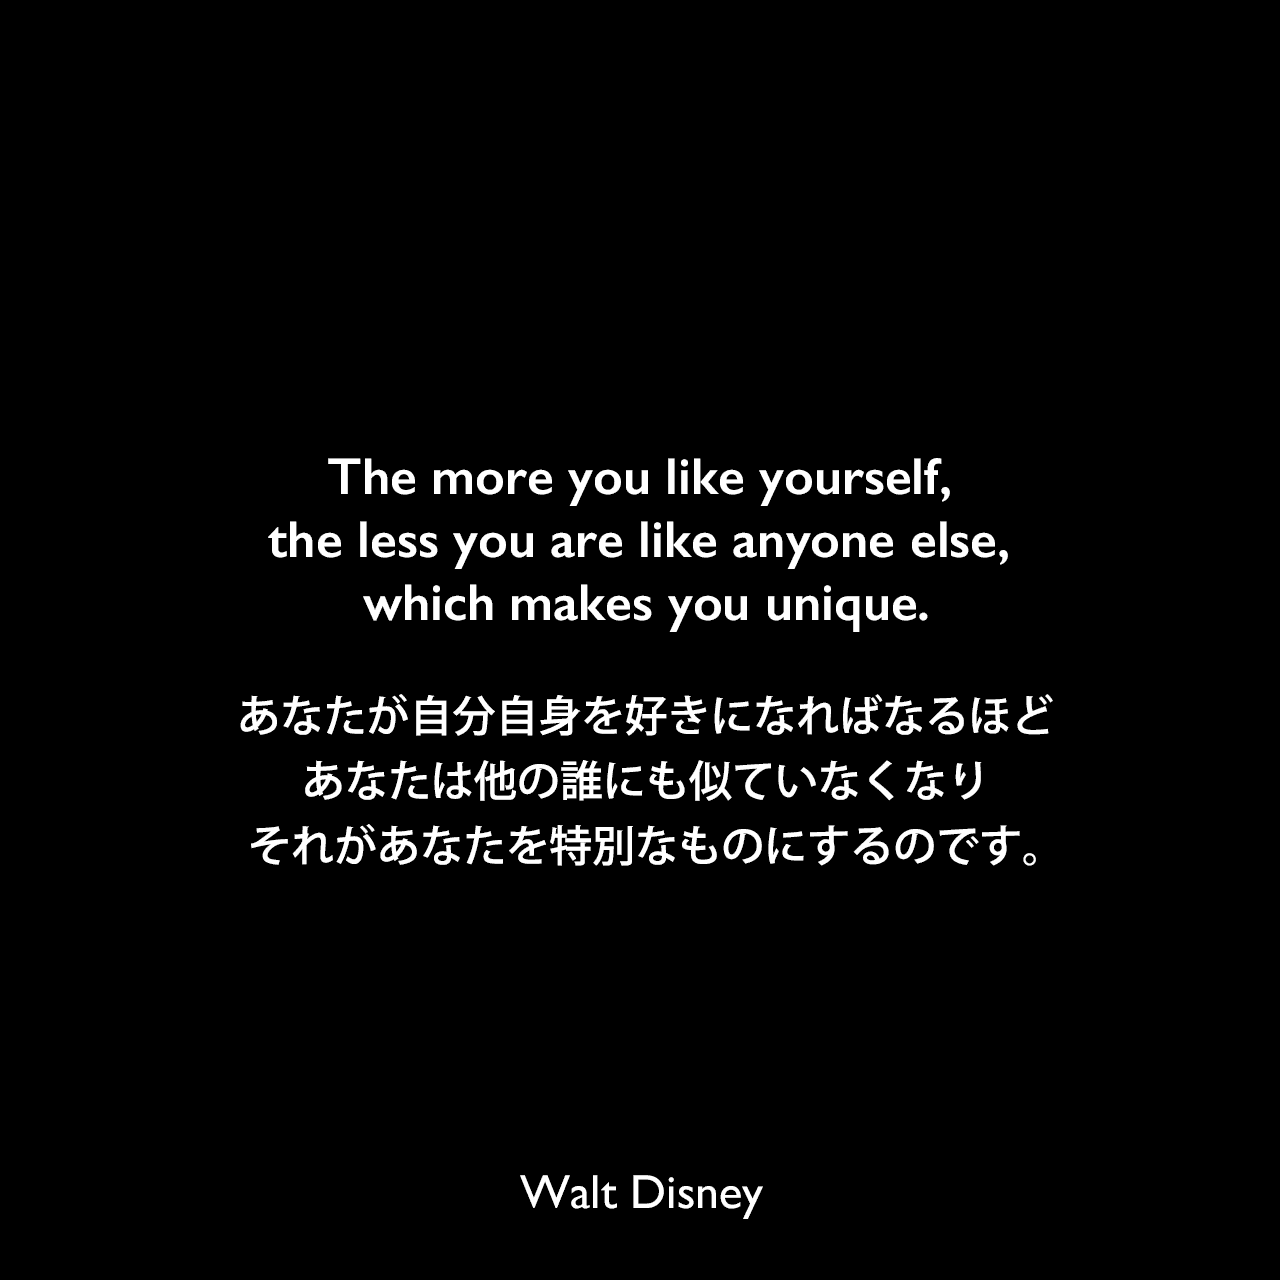 The more you like yourself, the less you are like anyone else, which makes you unique.あなたが自分自身を好きになればなるほど、あなたは他の誰にも似ていなくなり、それがあなたを特別なものにするのです。Walt Disney